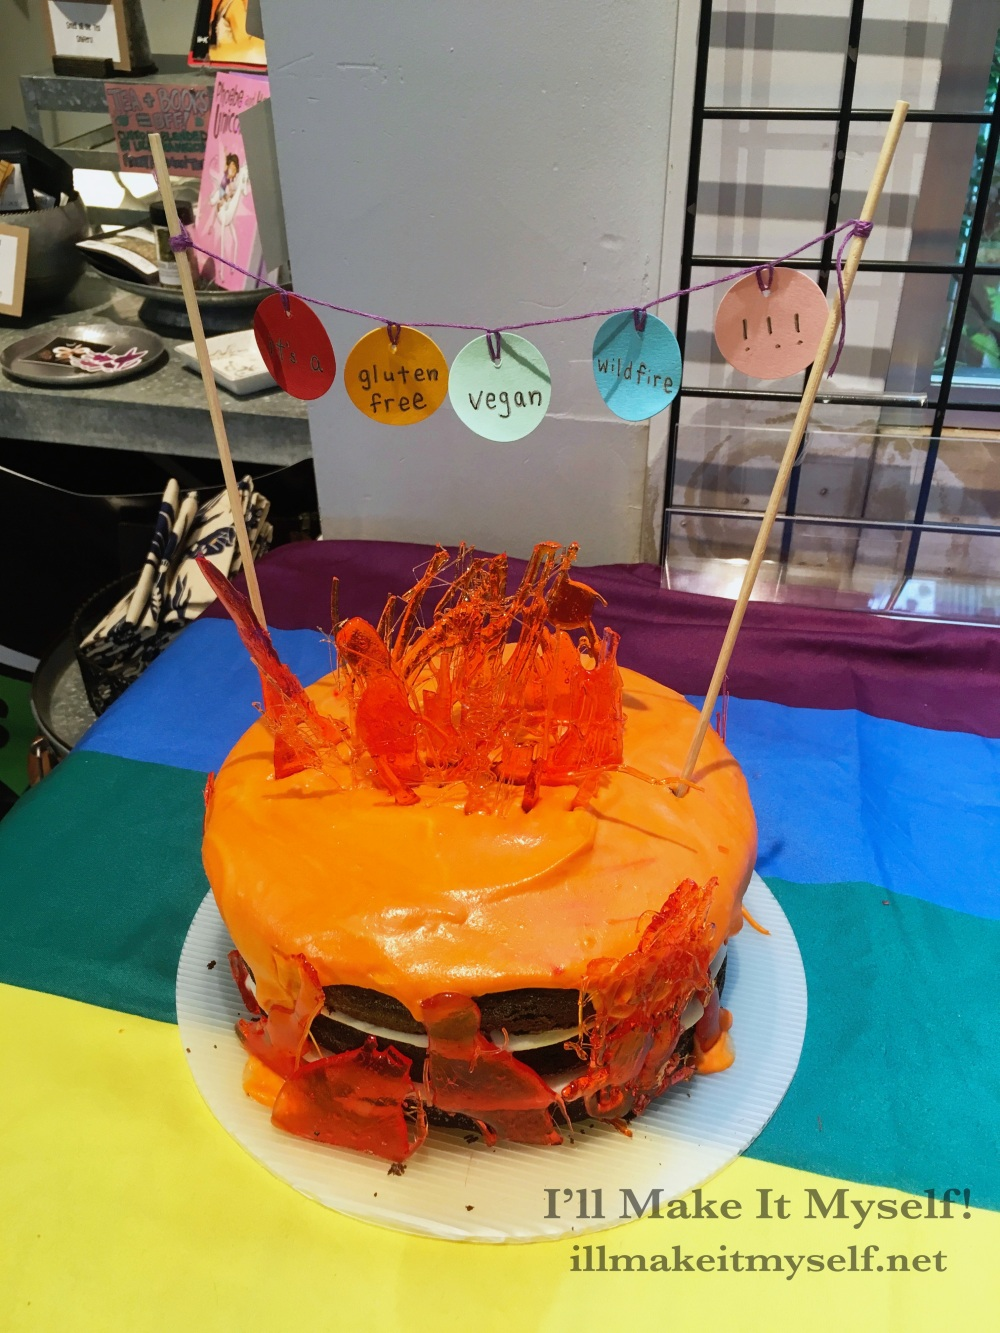 """Image: a shot from above of the 47,000 Gluten-Free Vegan Acre Wildfire Cake: a three-layer spicy chocolate gluten-free vegan cake. The cake has white coconut frosting between the bottom two layers and orange frosting on top dripping over the edges. There are orange and red flame-shaped candies pressed into the sides and top of the cake to look like flames. A mini-banner hangs between two skewers stuck into the cake. The banner reads, """"Congrats, it's a gluten-free vegan wildfire!!"""""""